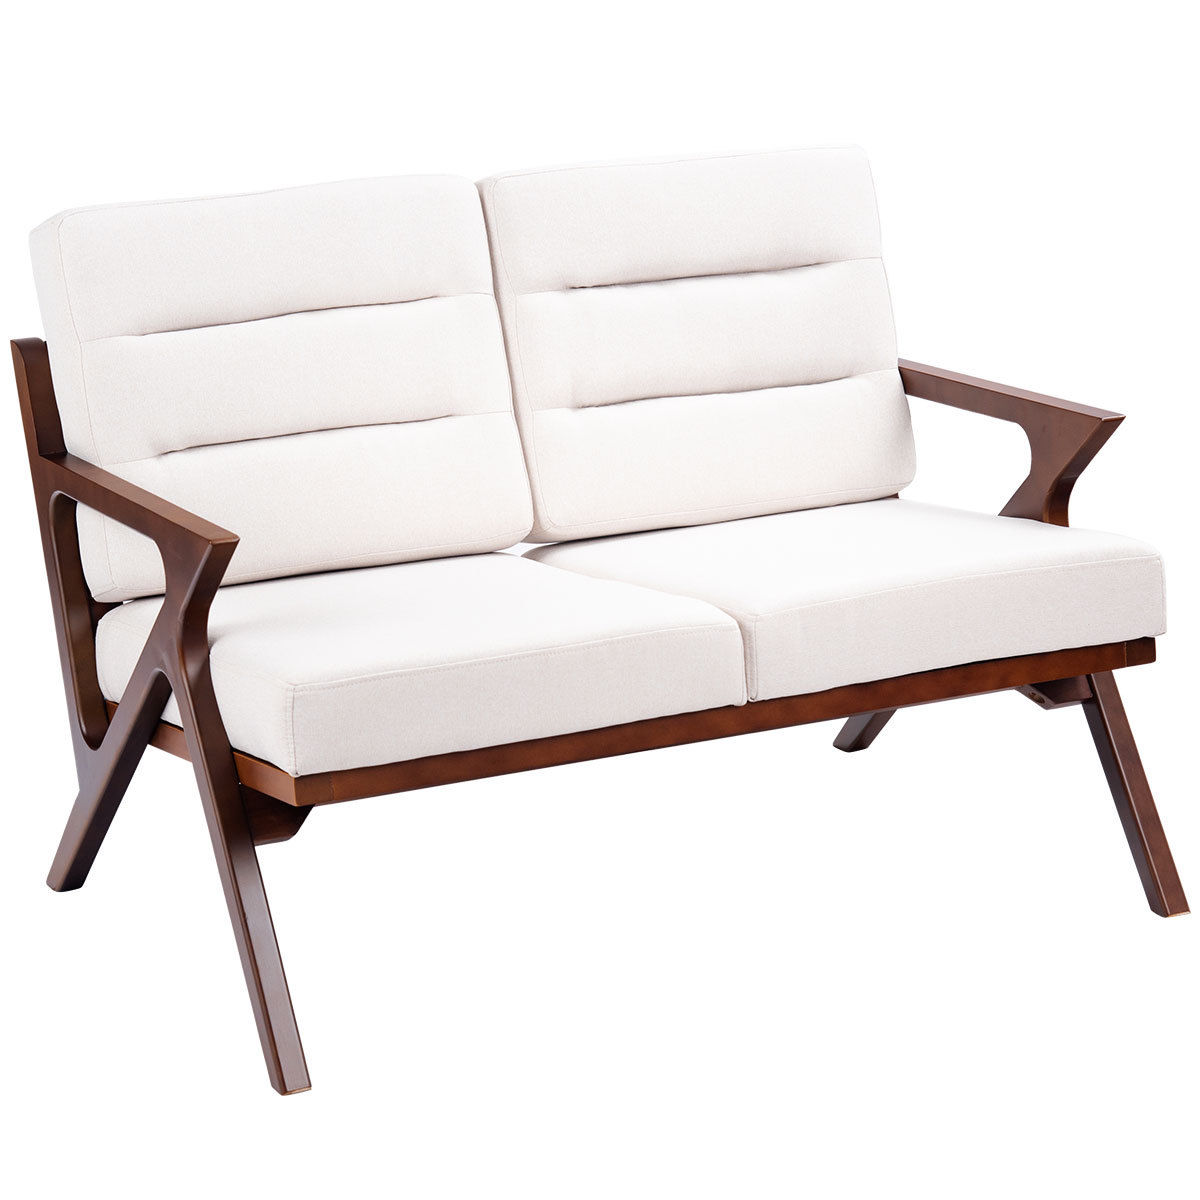 Gymax Loveseat Armchair Sofa Fabric Upholstered Wooden Lounge Chair Two-Seater Beige - Walmart.com  sc 1 st  Walmart & Gymax Loveseat Armchair Sofa Fabric Upholstered Wooden Lounge Chair ...